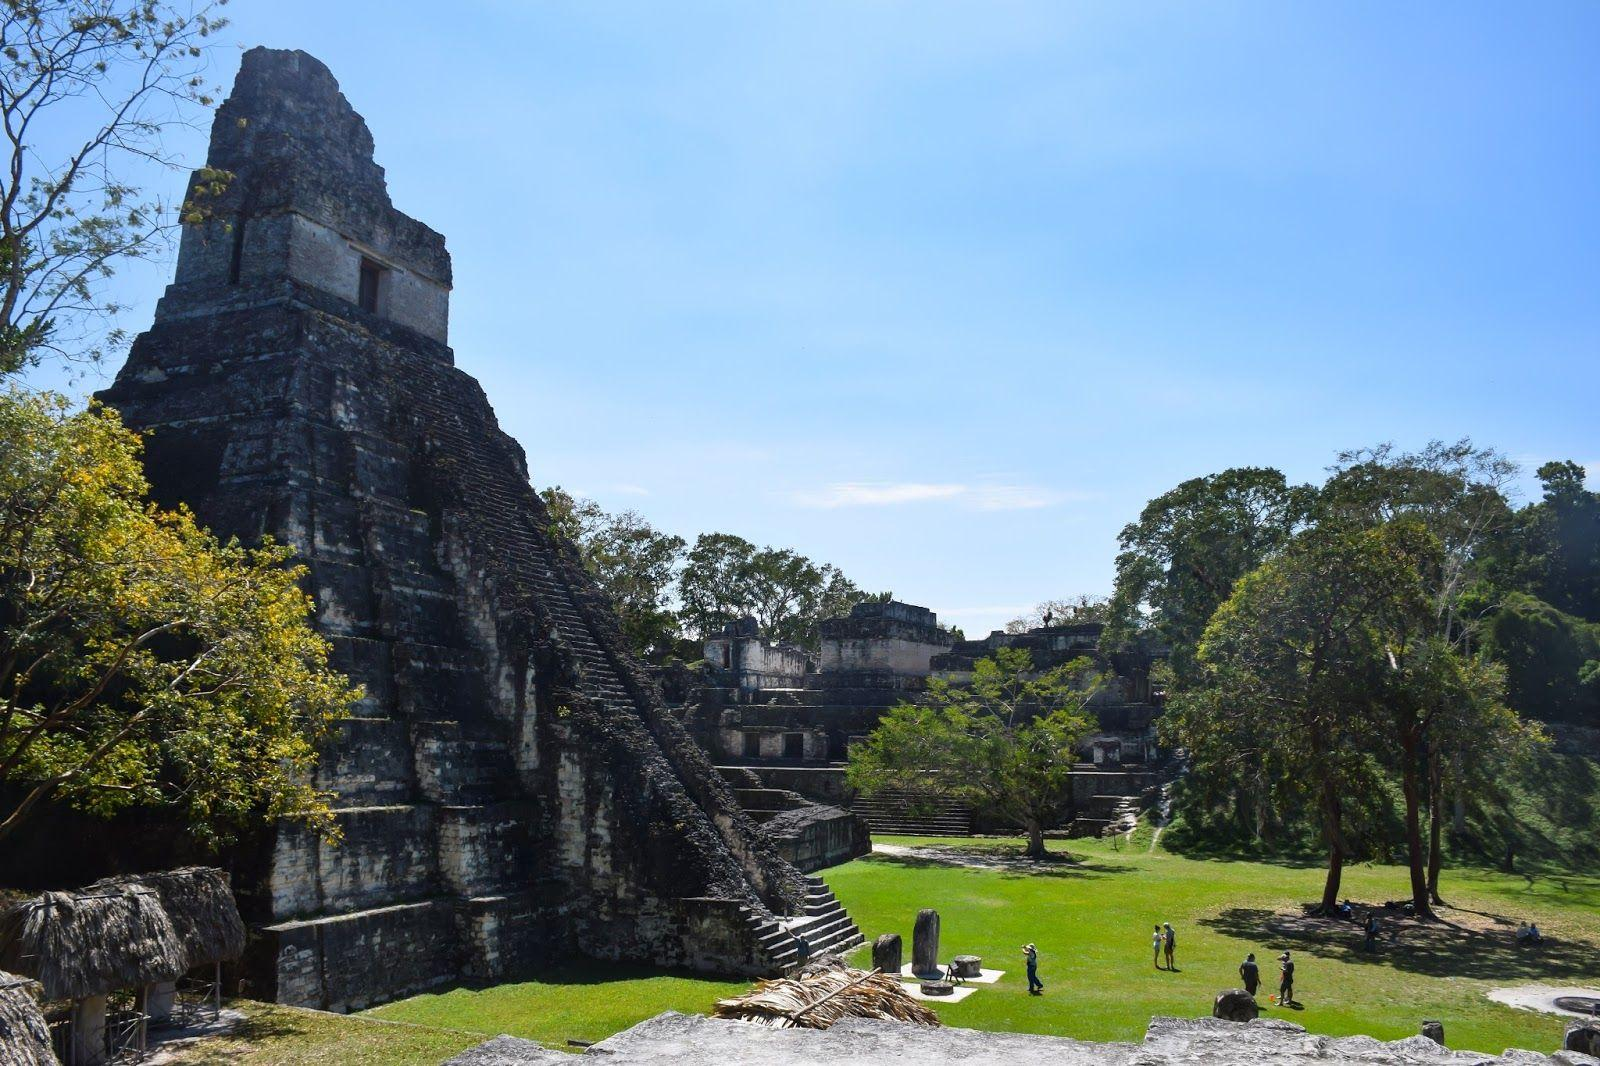 Exploring The Ruins of Tikal - A Make Believe World